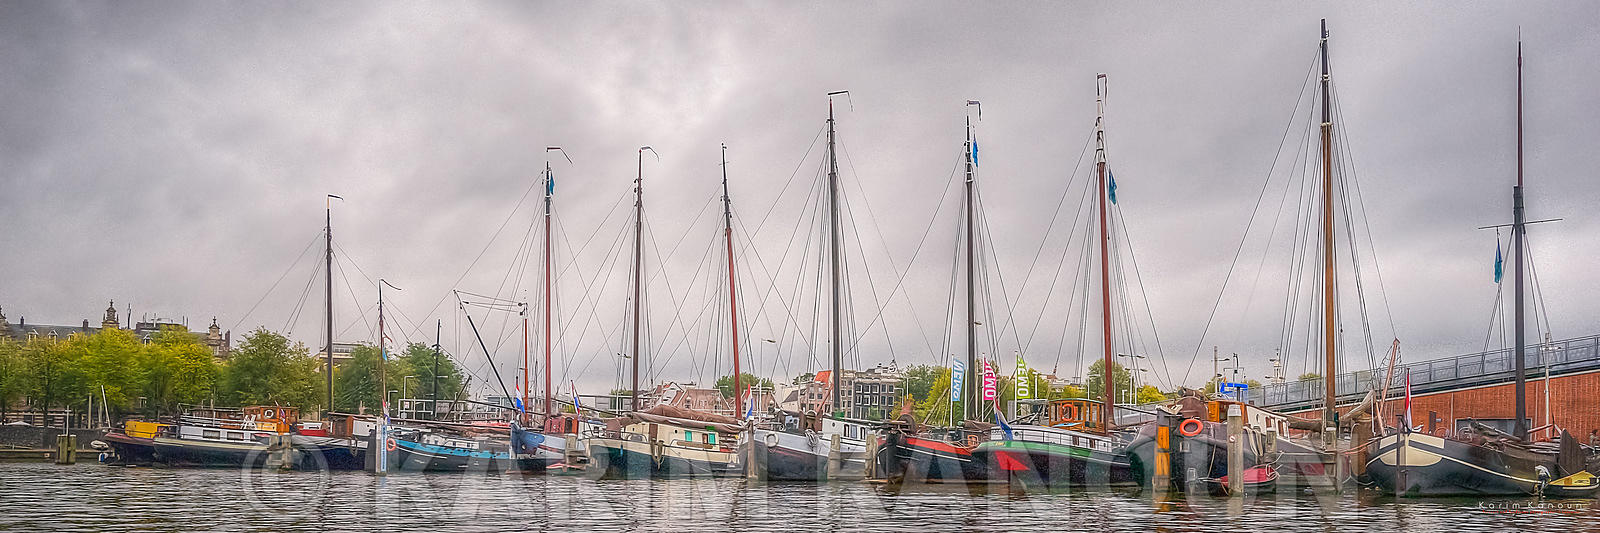 Panorama - Lines of colorful sailing boats